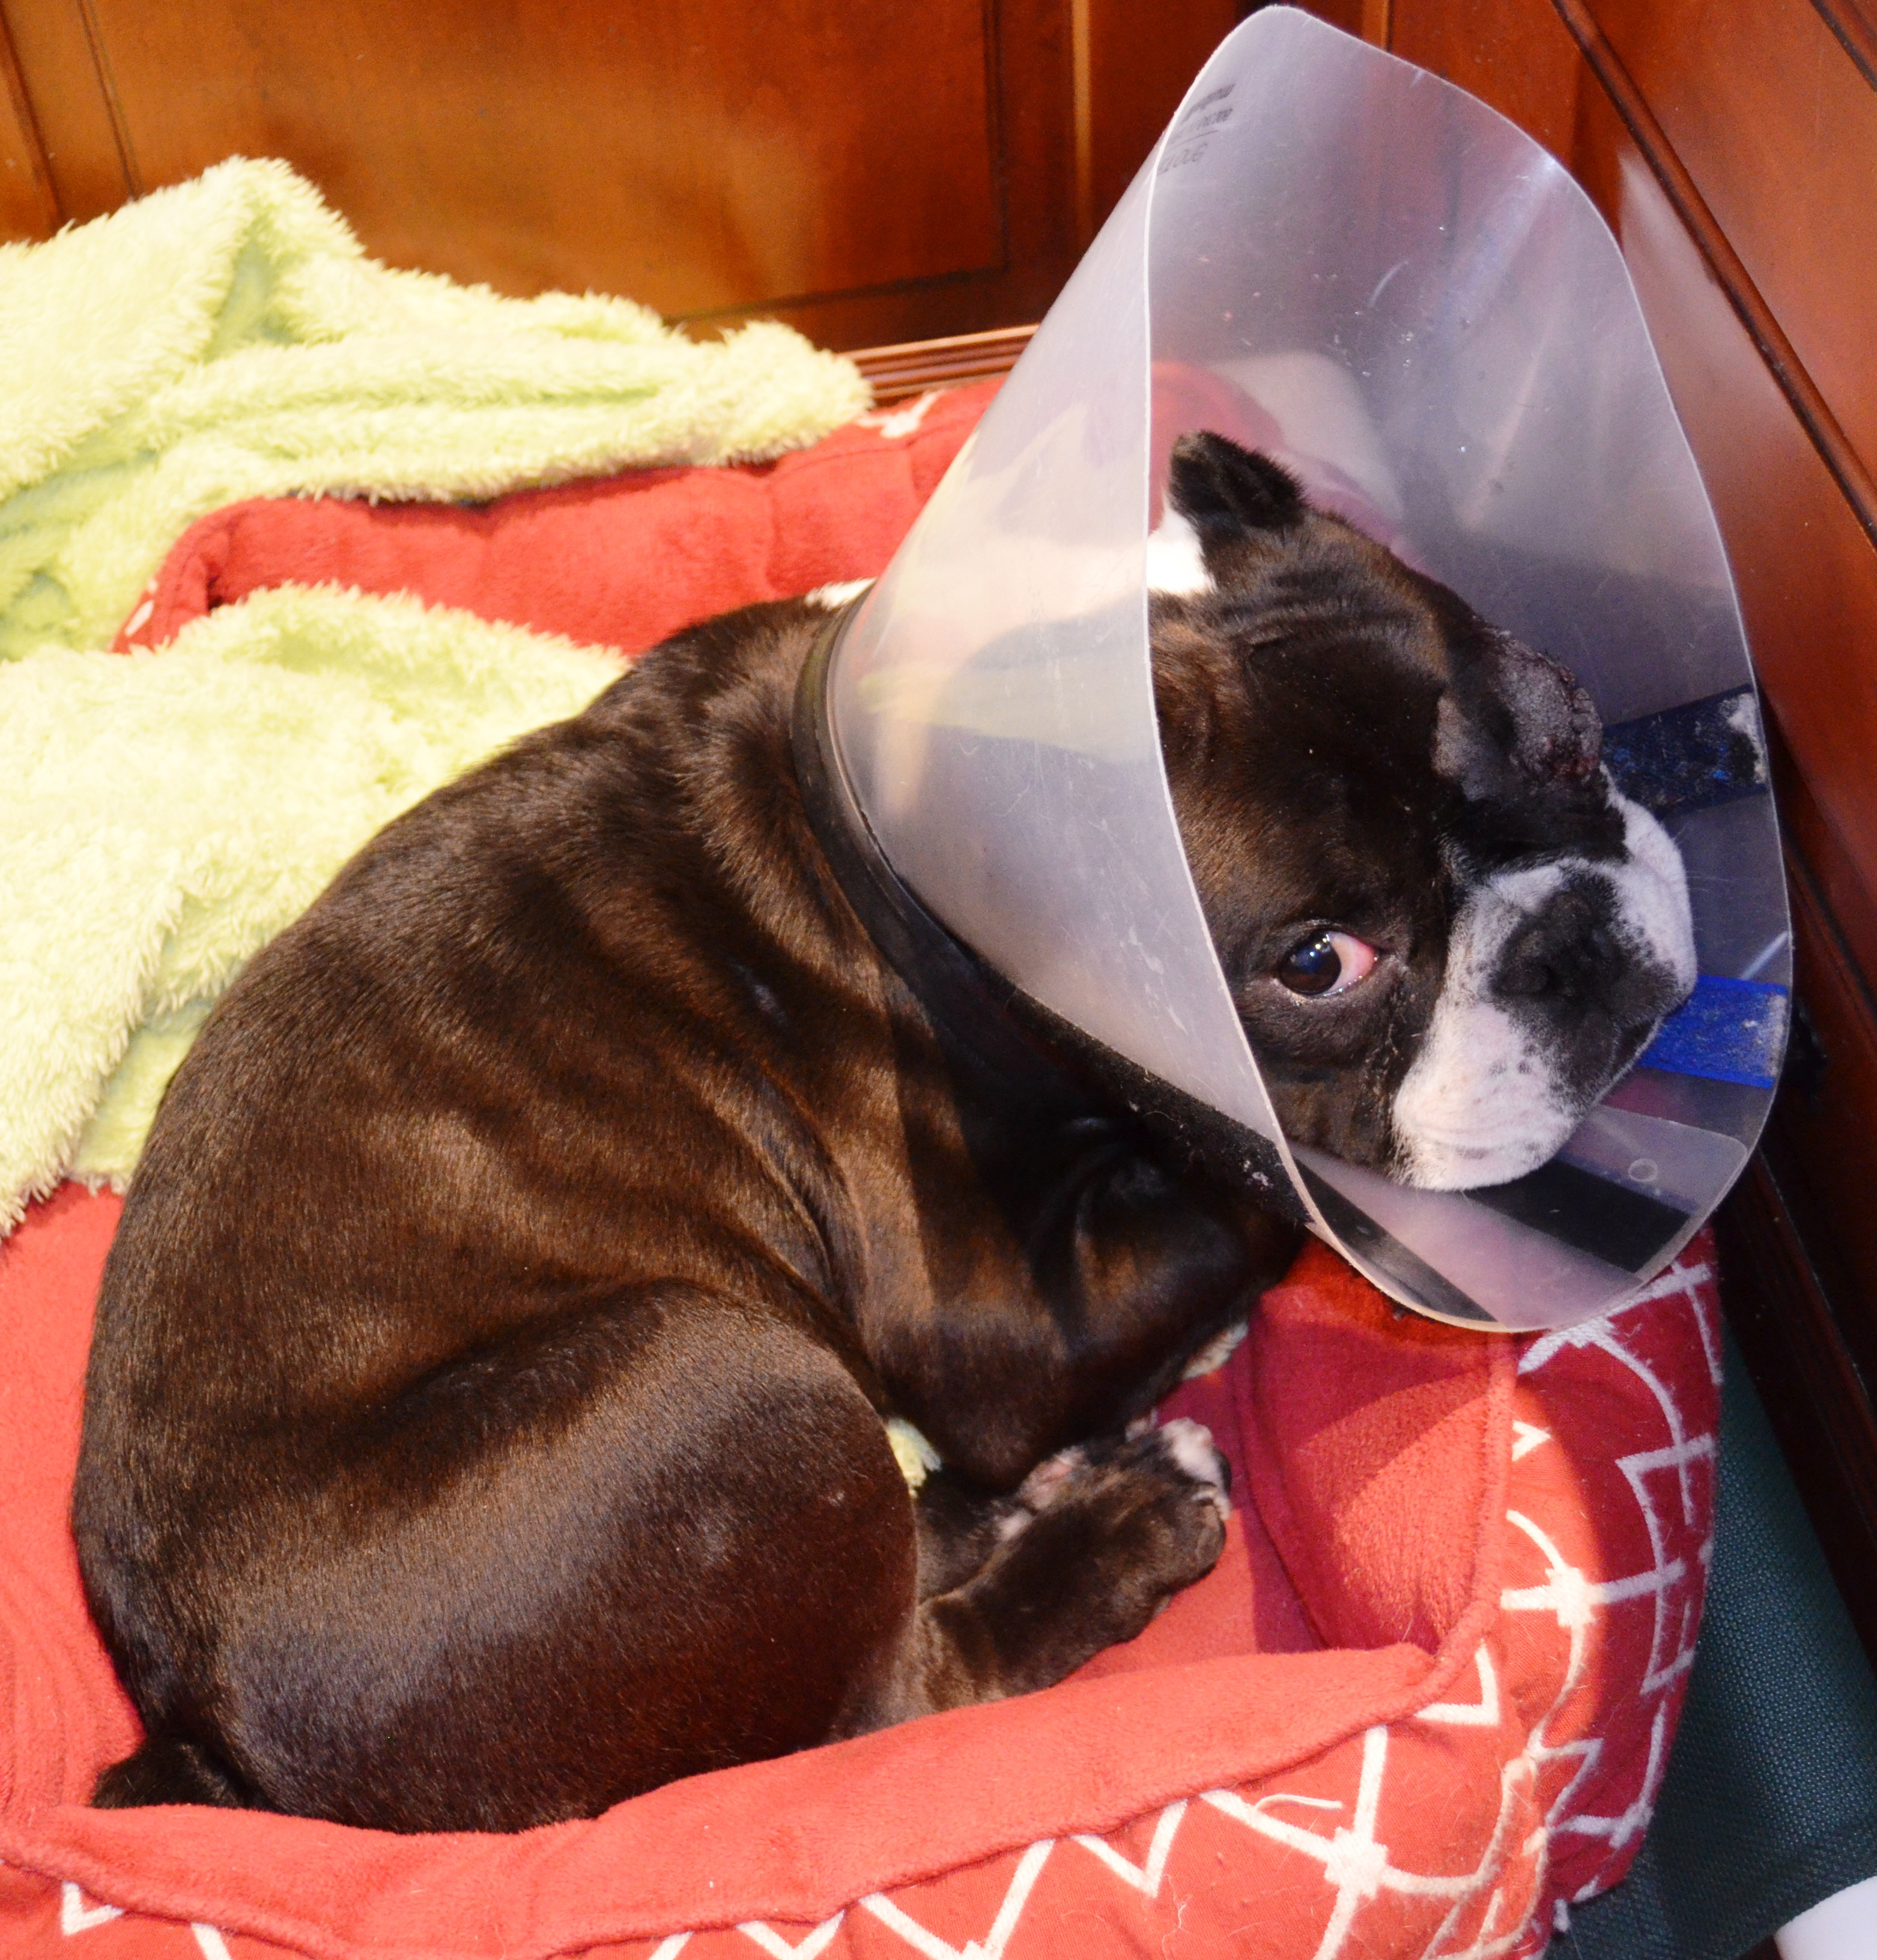 Hercules is trying his best to stay quiet and let his eye heal.  He can hardly wait to get the all clear to play and not have to wear the cone anymore!